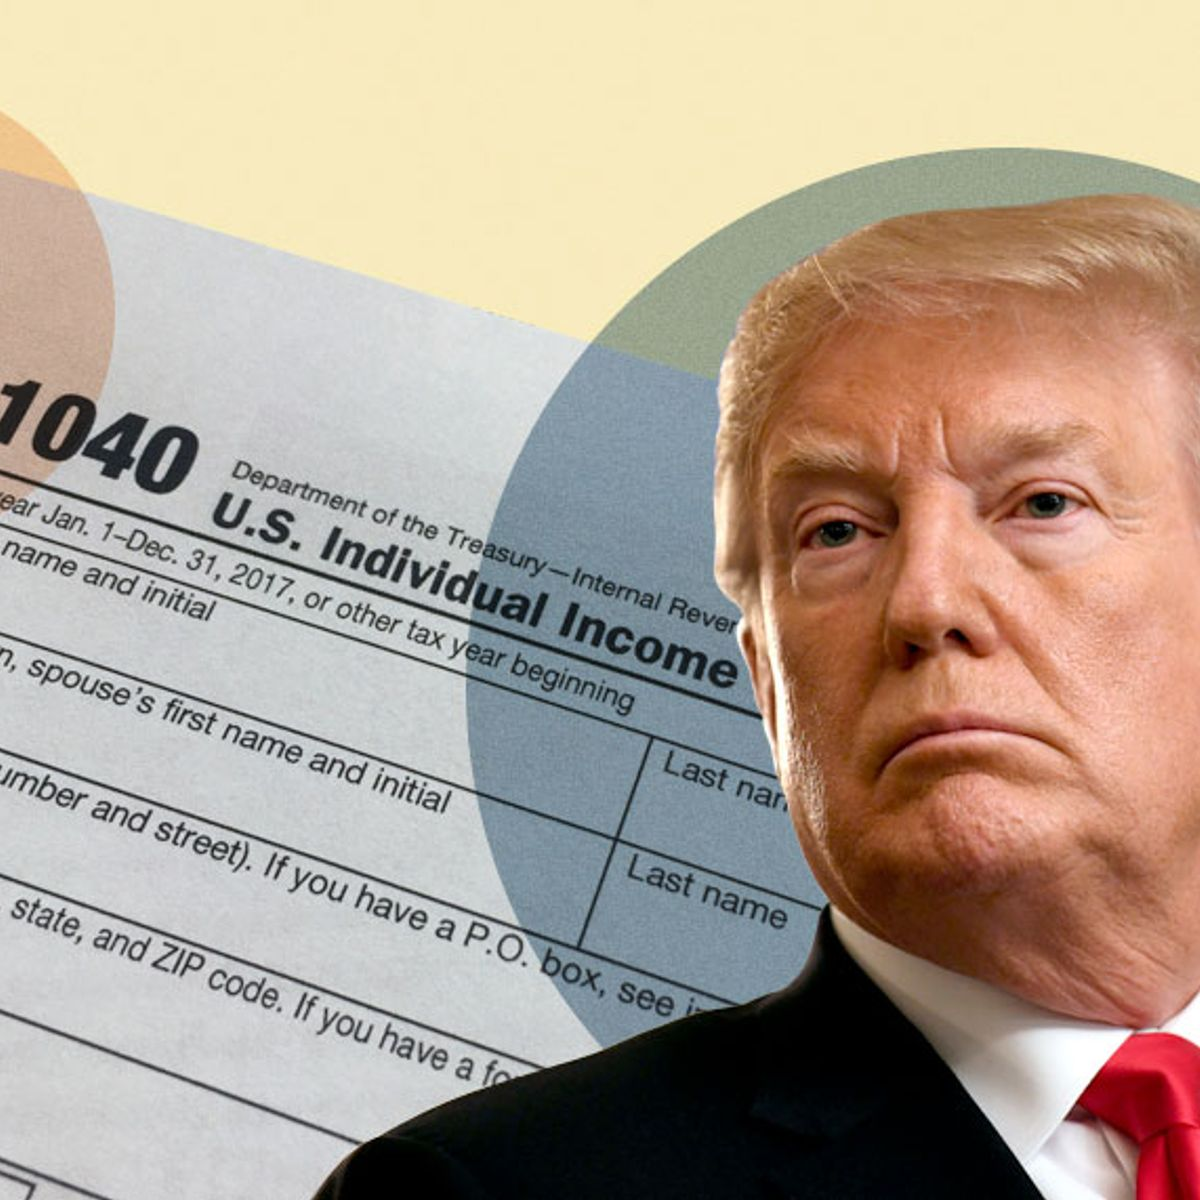 Never-before-seen Trump tax documents show major inconsistencies